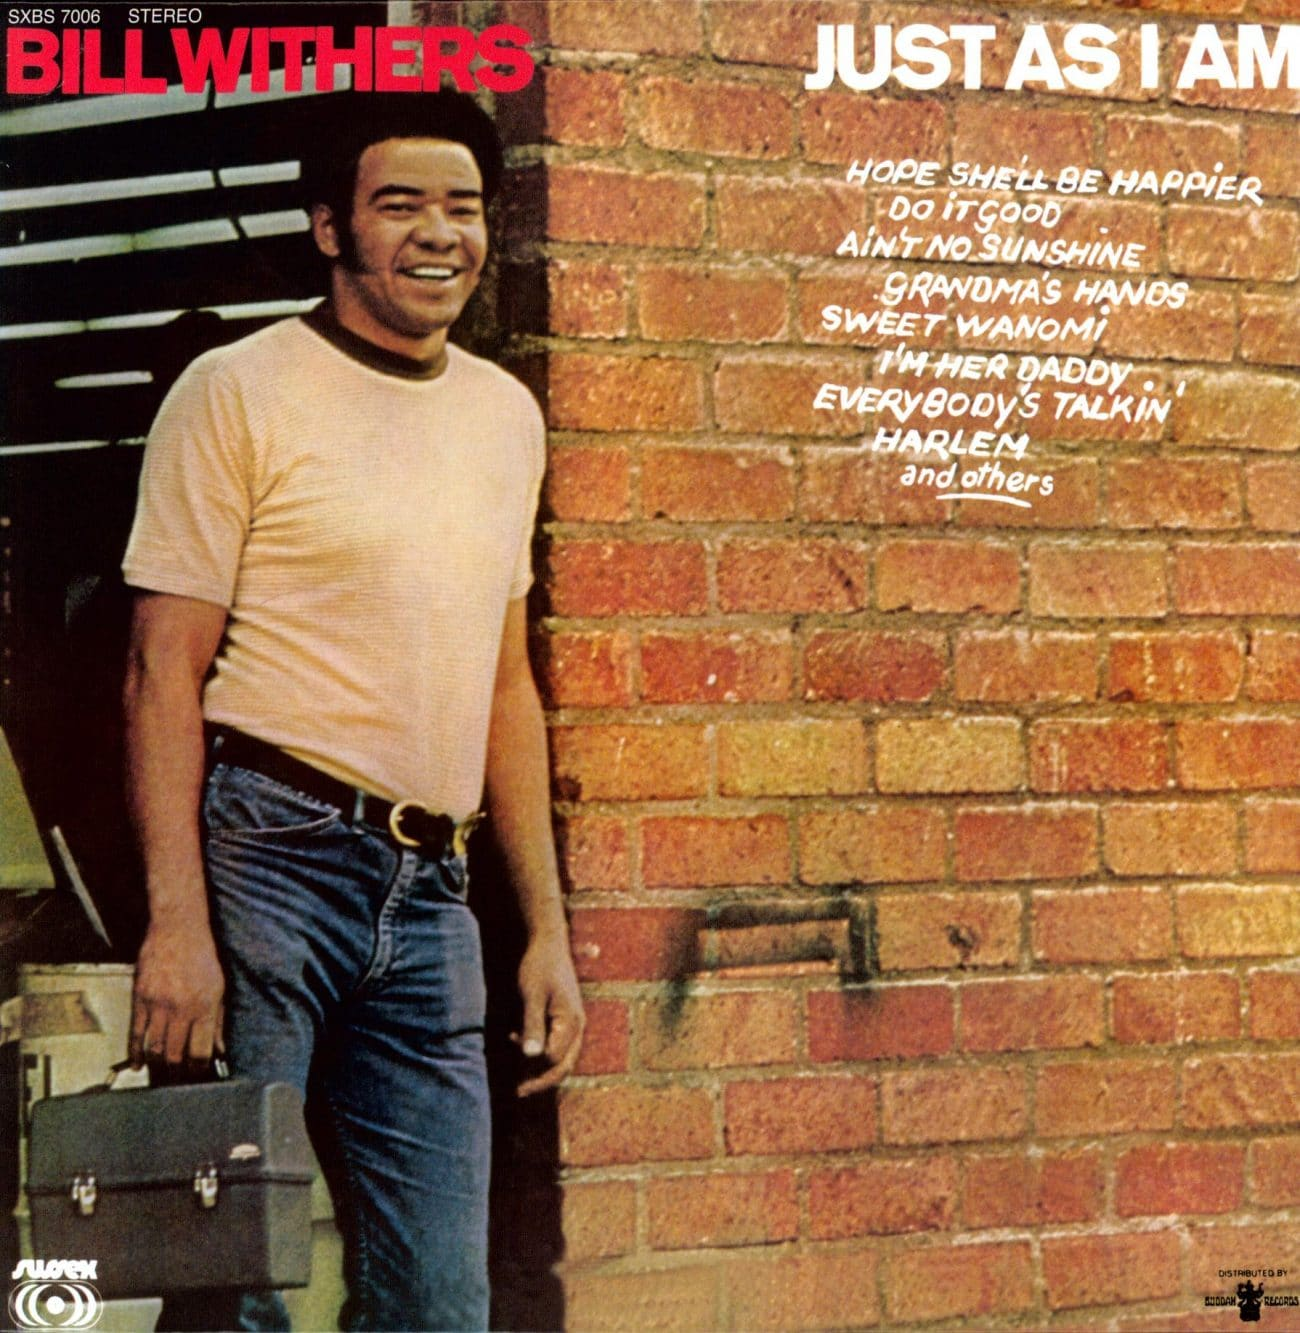 Bill Withers - Just As I Am - 1971